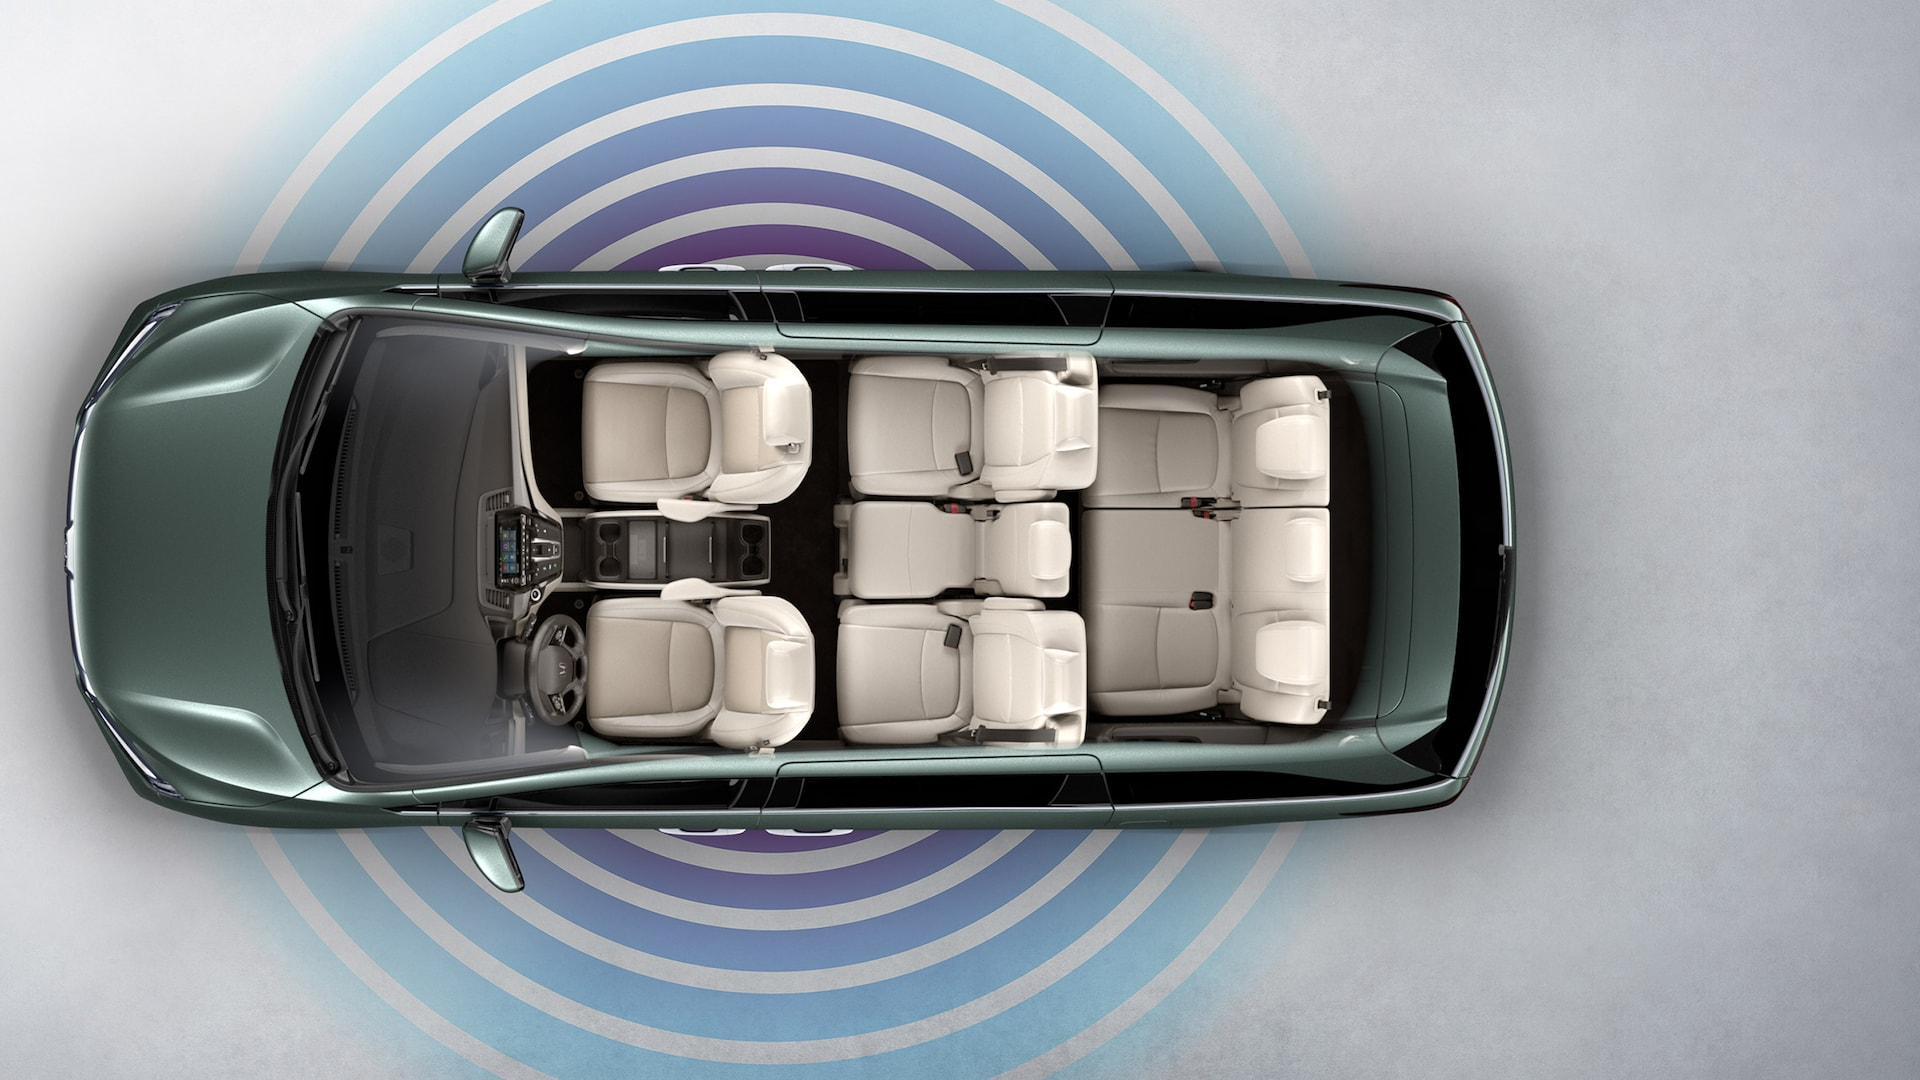 Overhead view of 2020 Honda Odyssey Elite in Forest Mist Metallic with mobile hotspot graphic overlay.